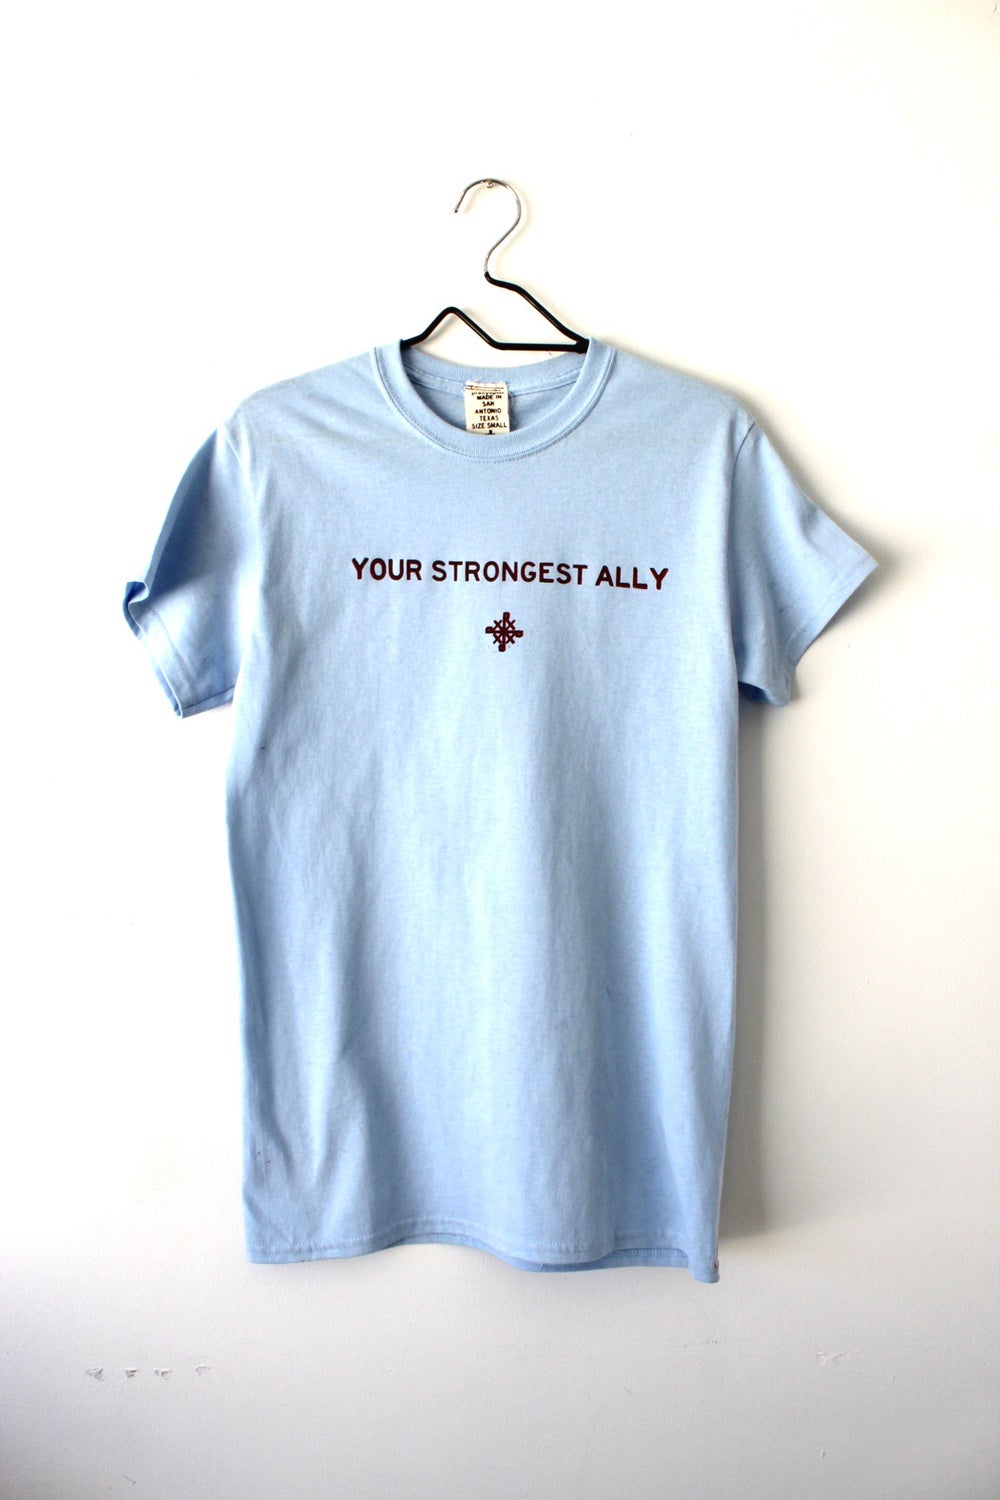 your strongest ally tee in light blue